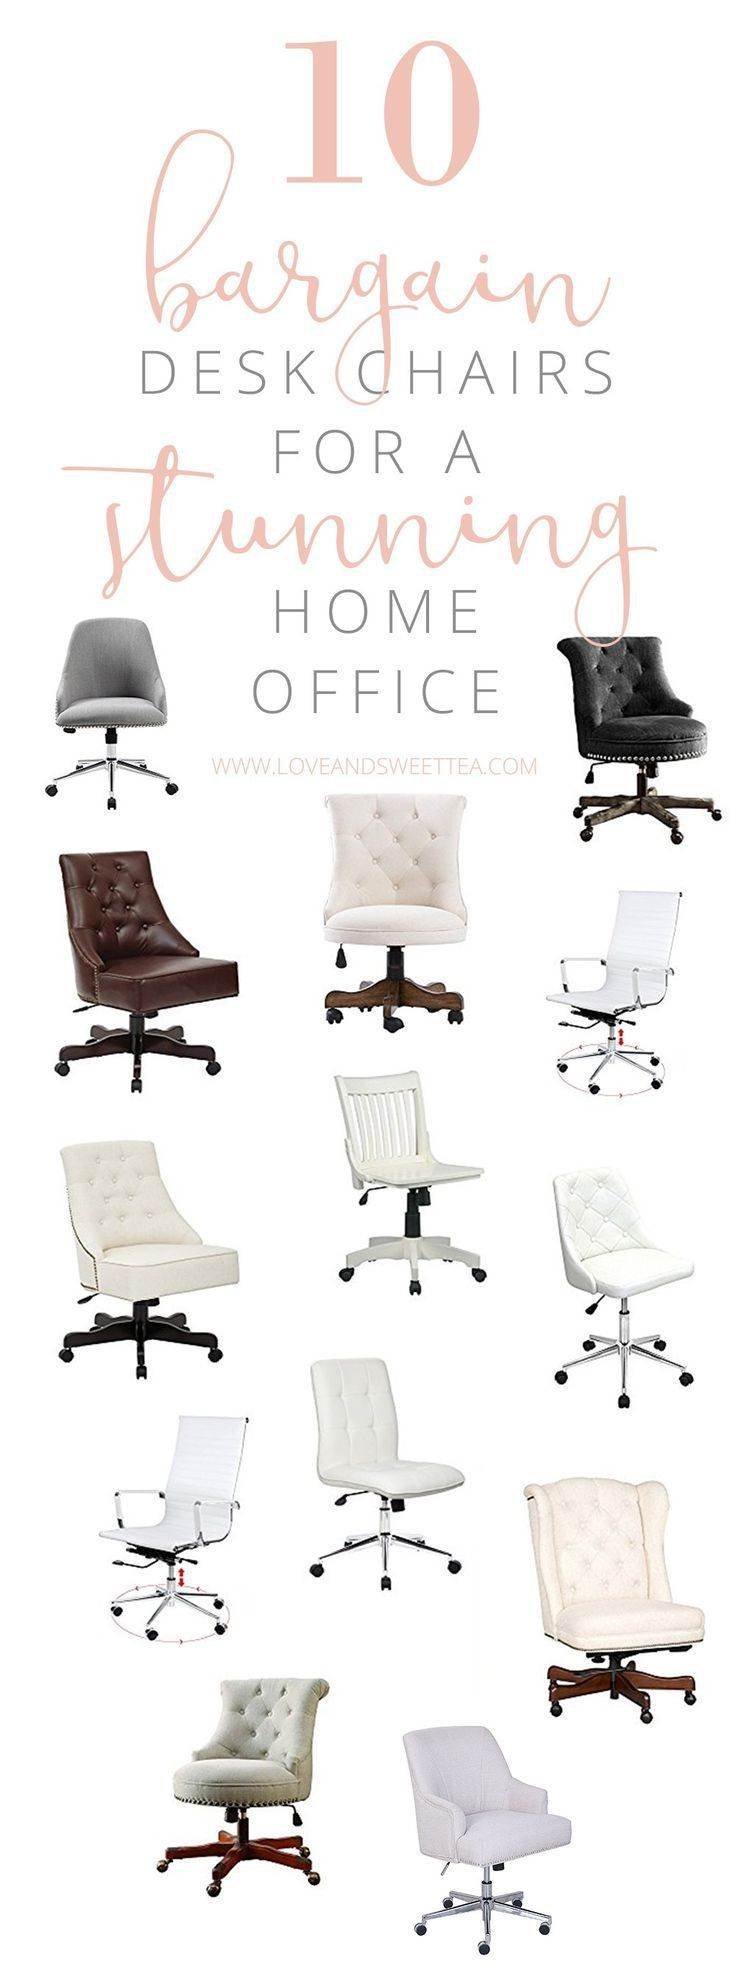 10 Bargain Desk Chair Ideas Of A Stunning Home Office Desk Chair Comfortable Comfortable Desk Home Office Chairs